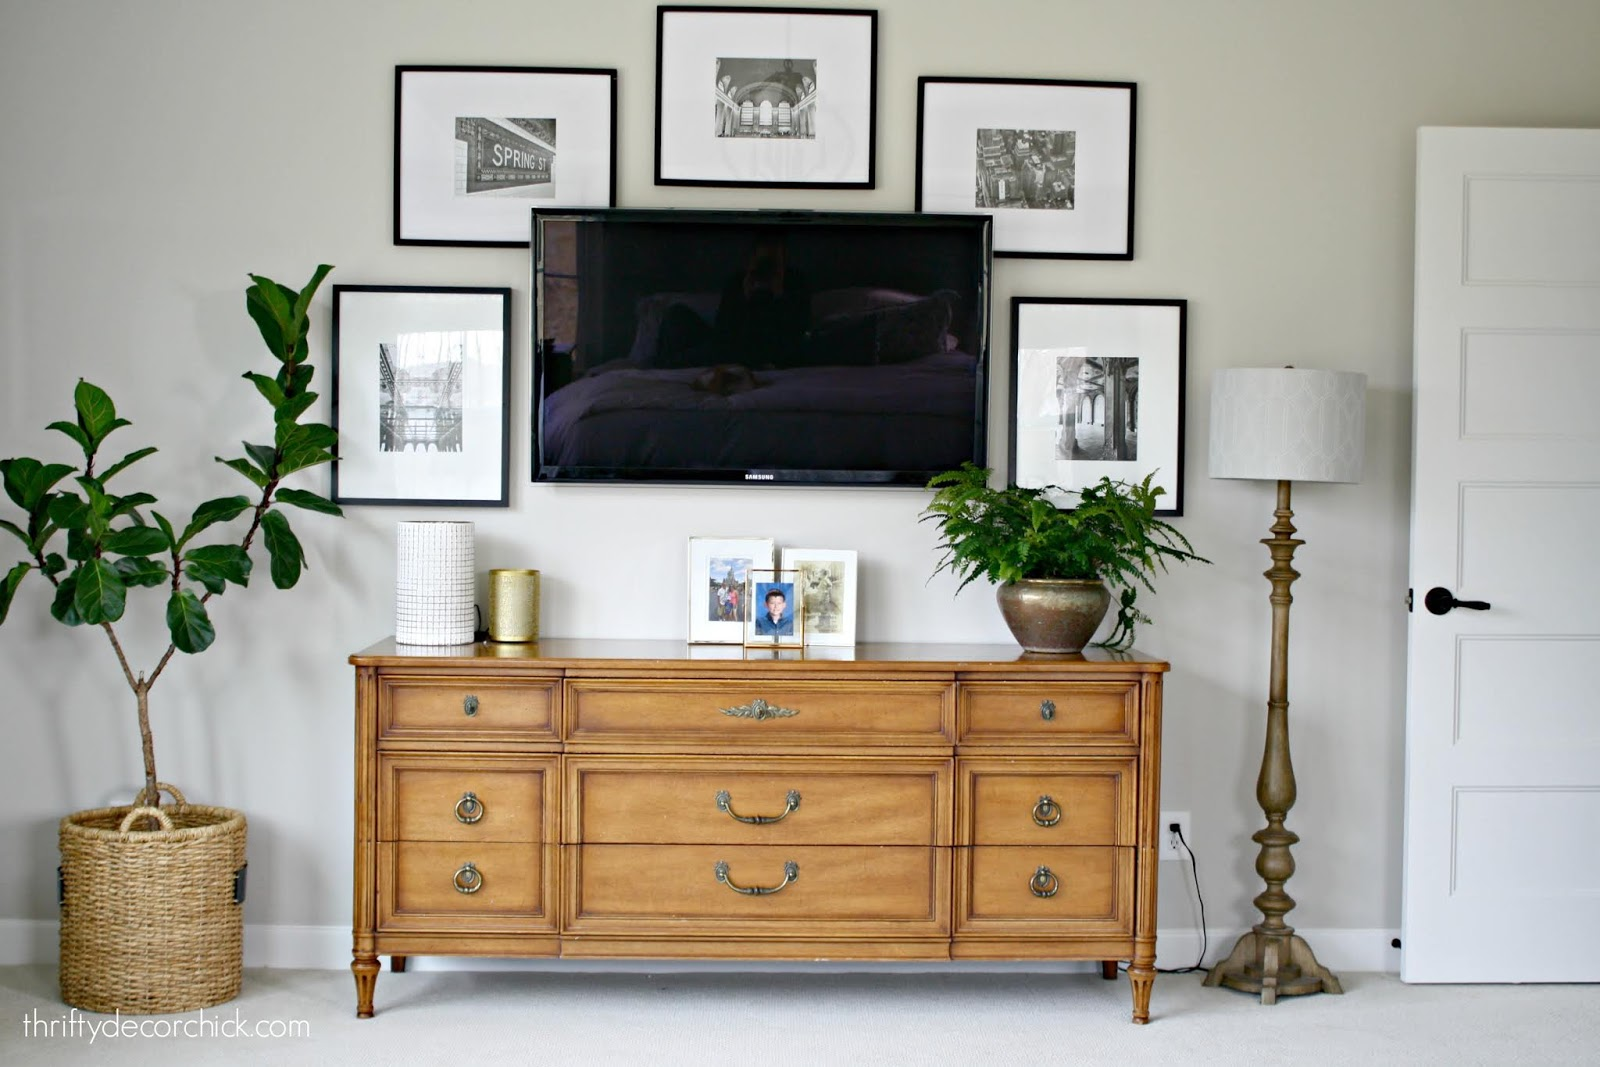 how to decorate around the TV